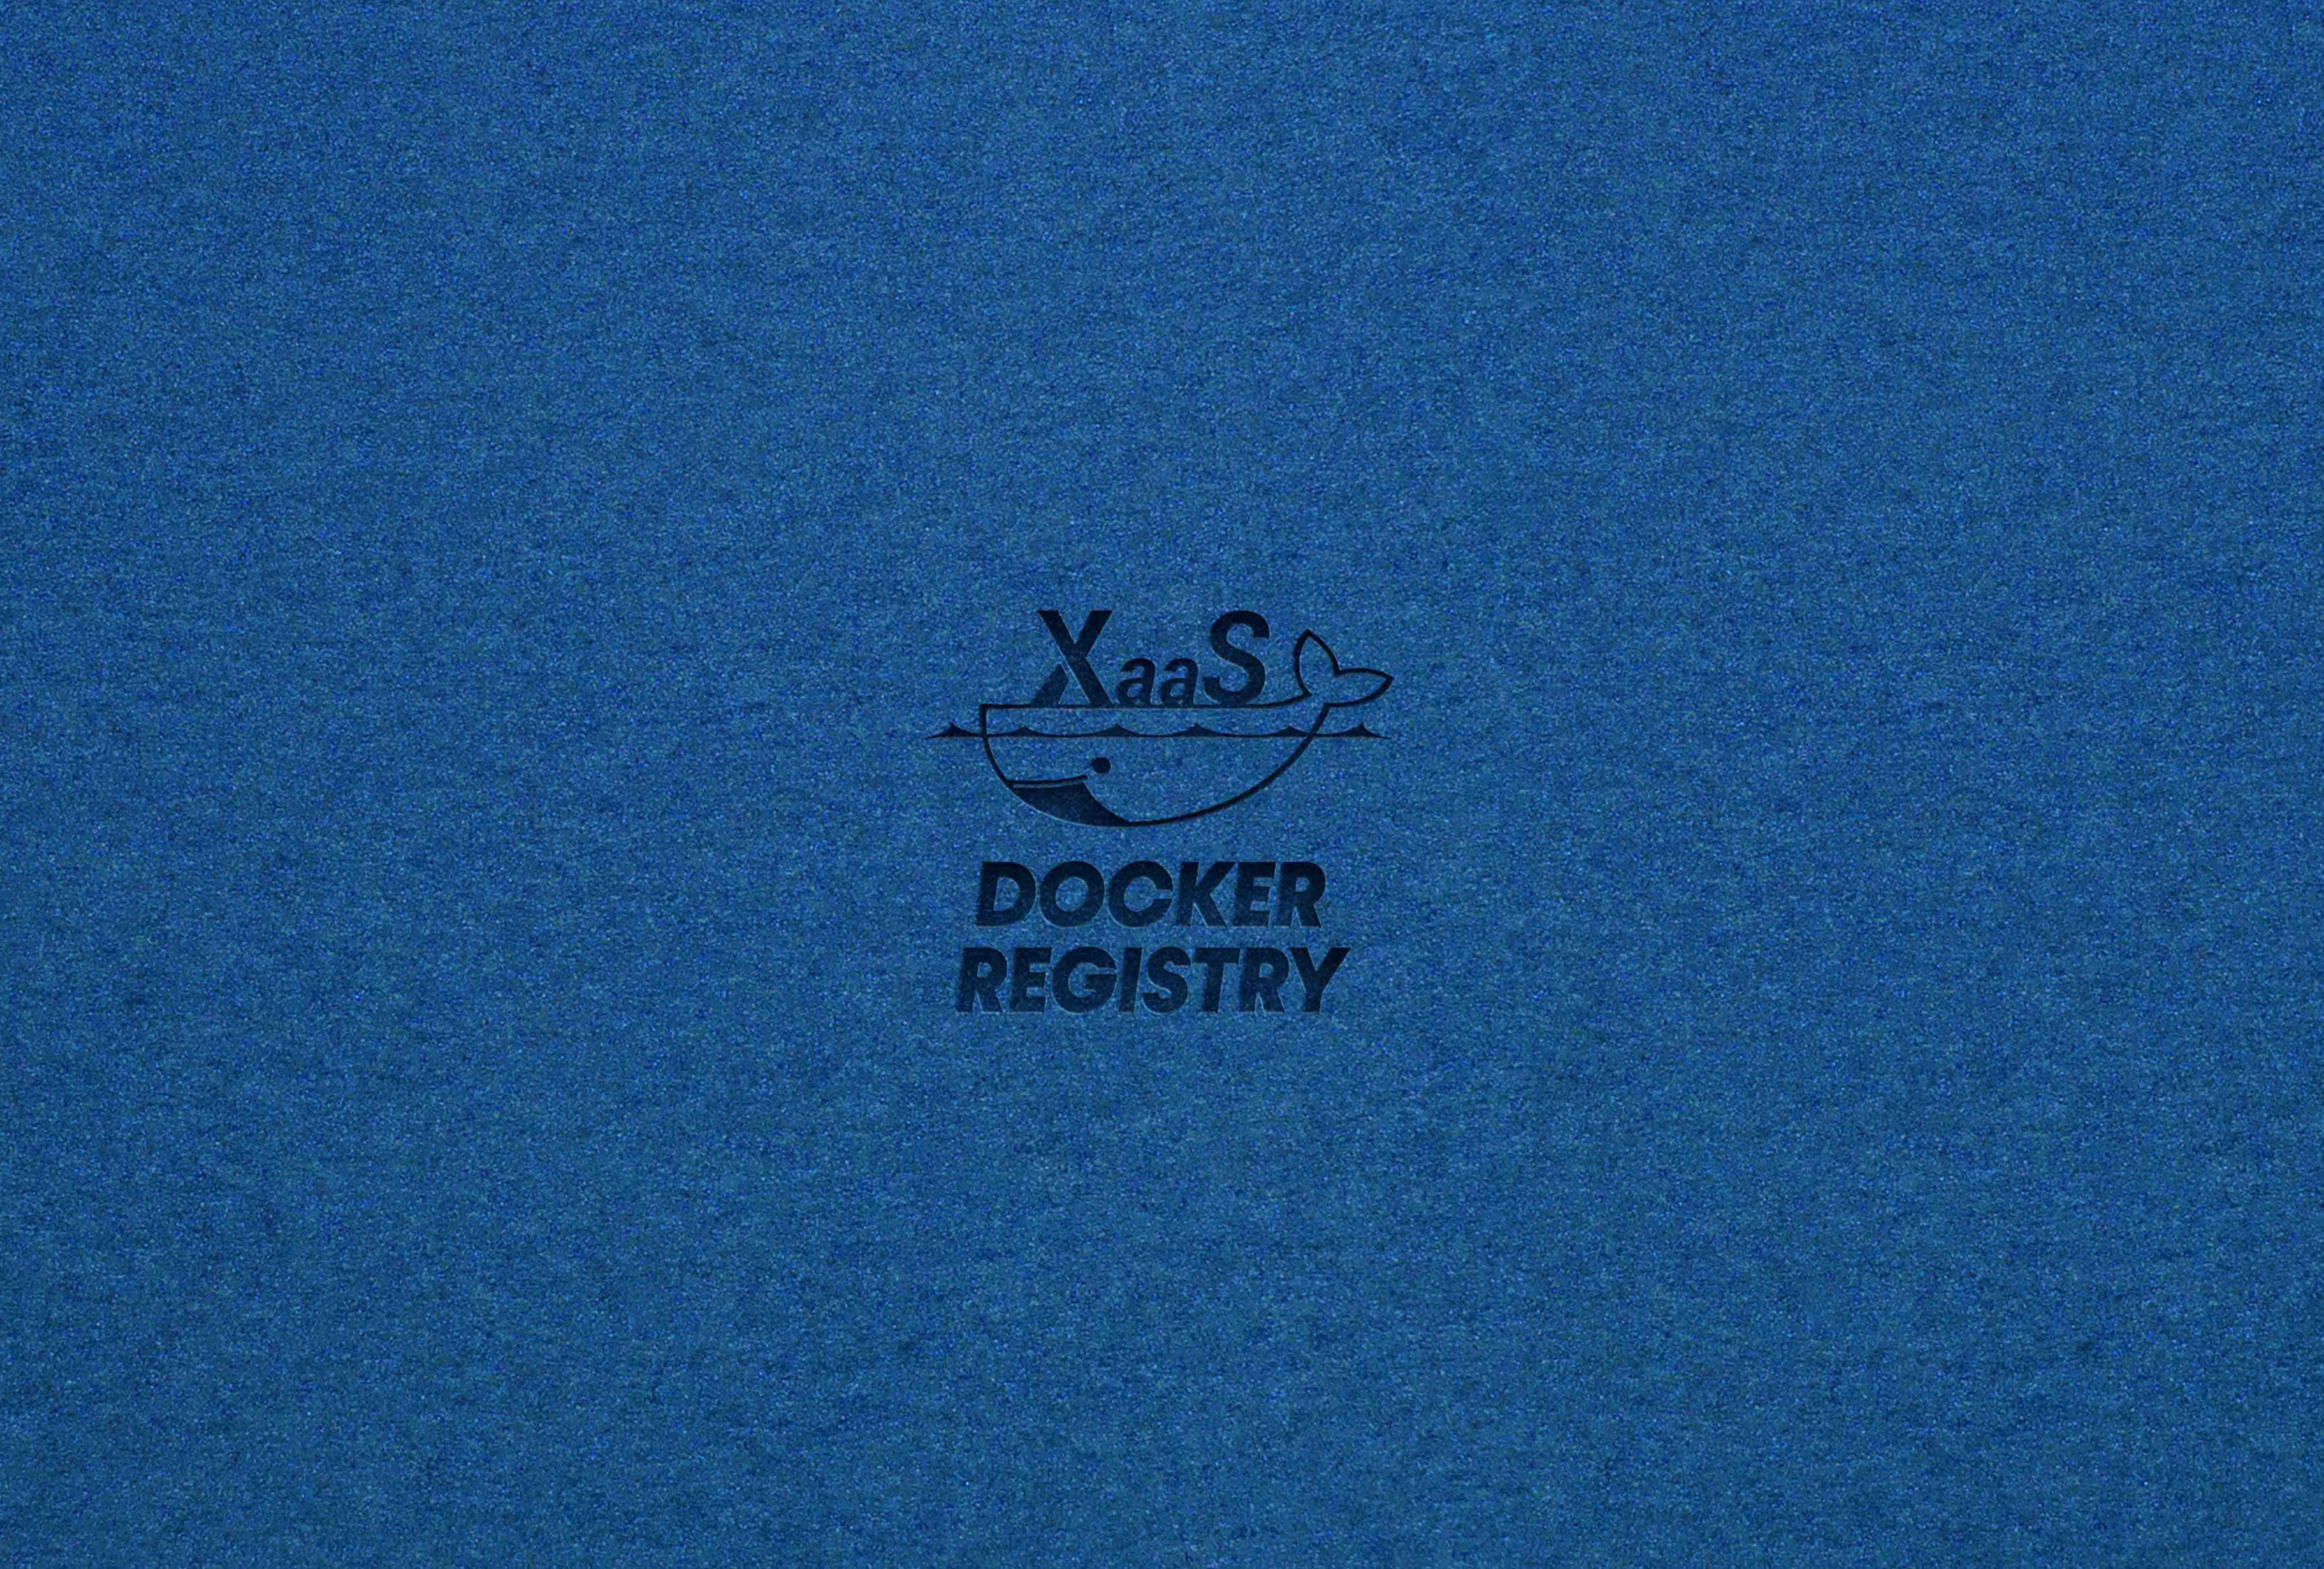 XaaS Docker Registry